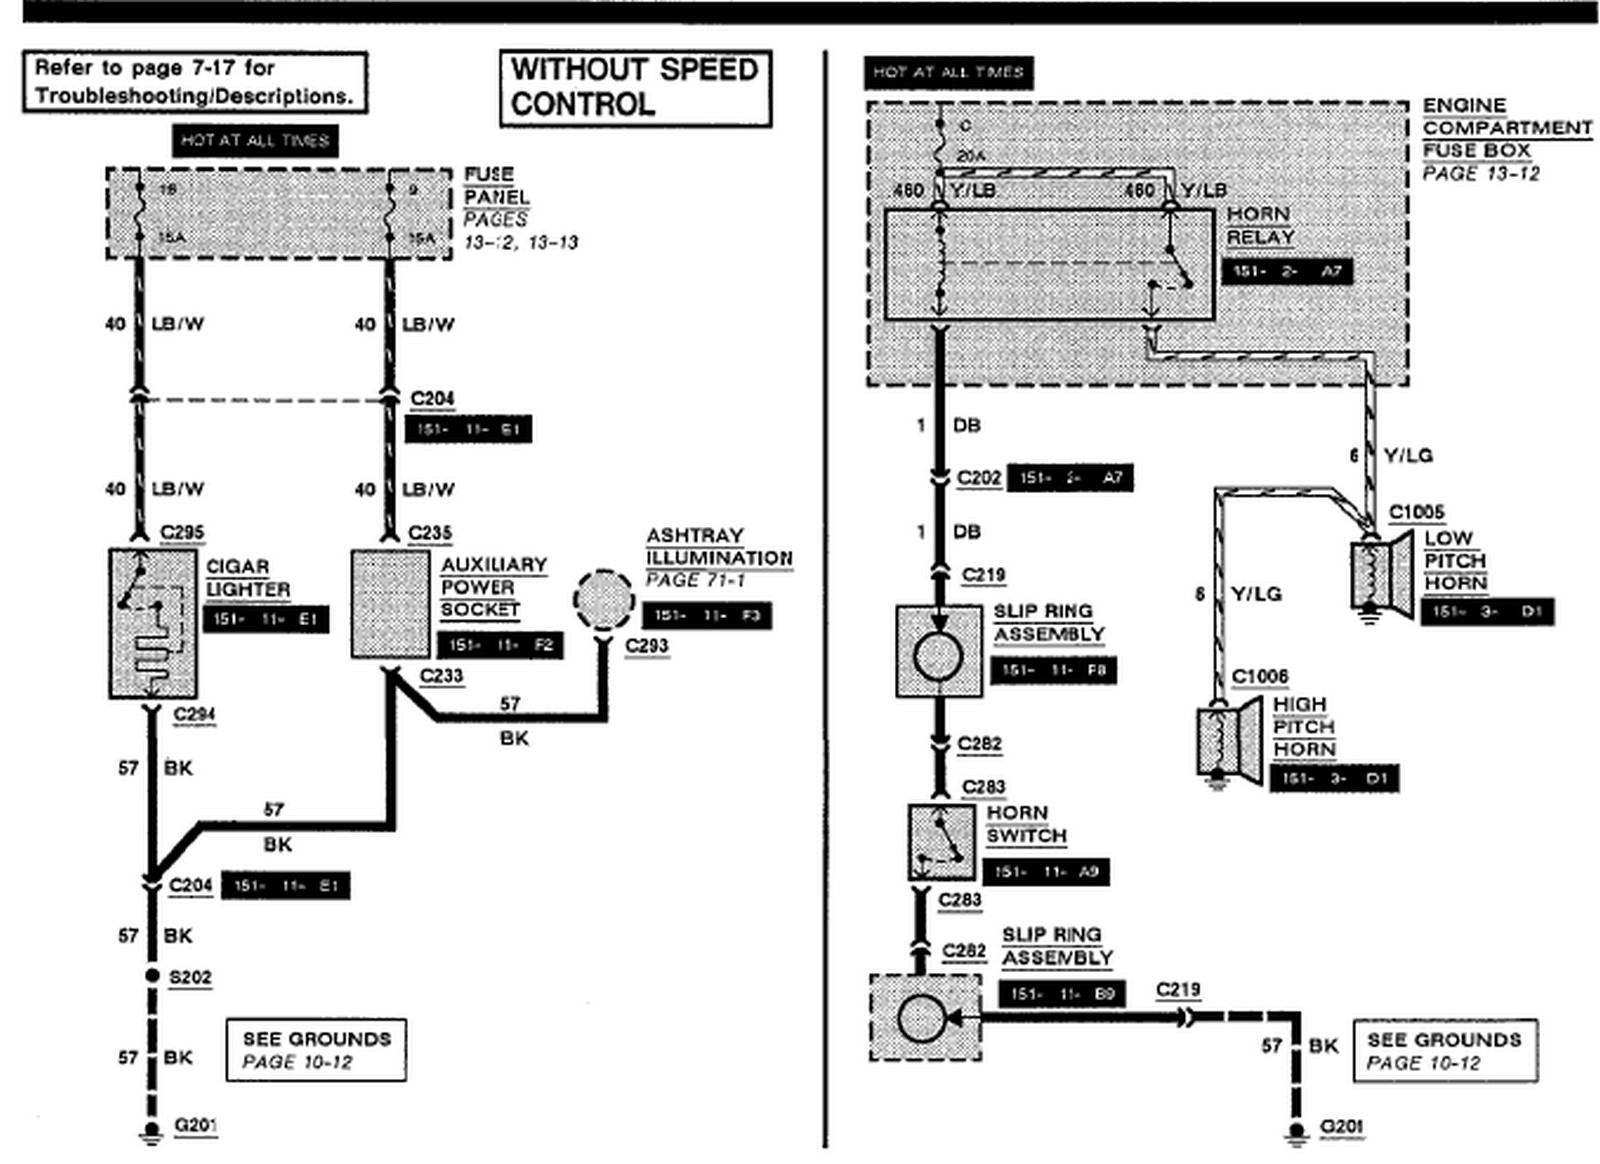 1992 ford f150 starter wiring diagram InMePmt ford f150 starter wiring diagram image details 1992 ford f250 starter wiring diagram at nearapp.co